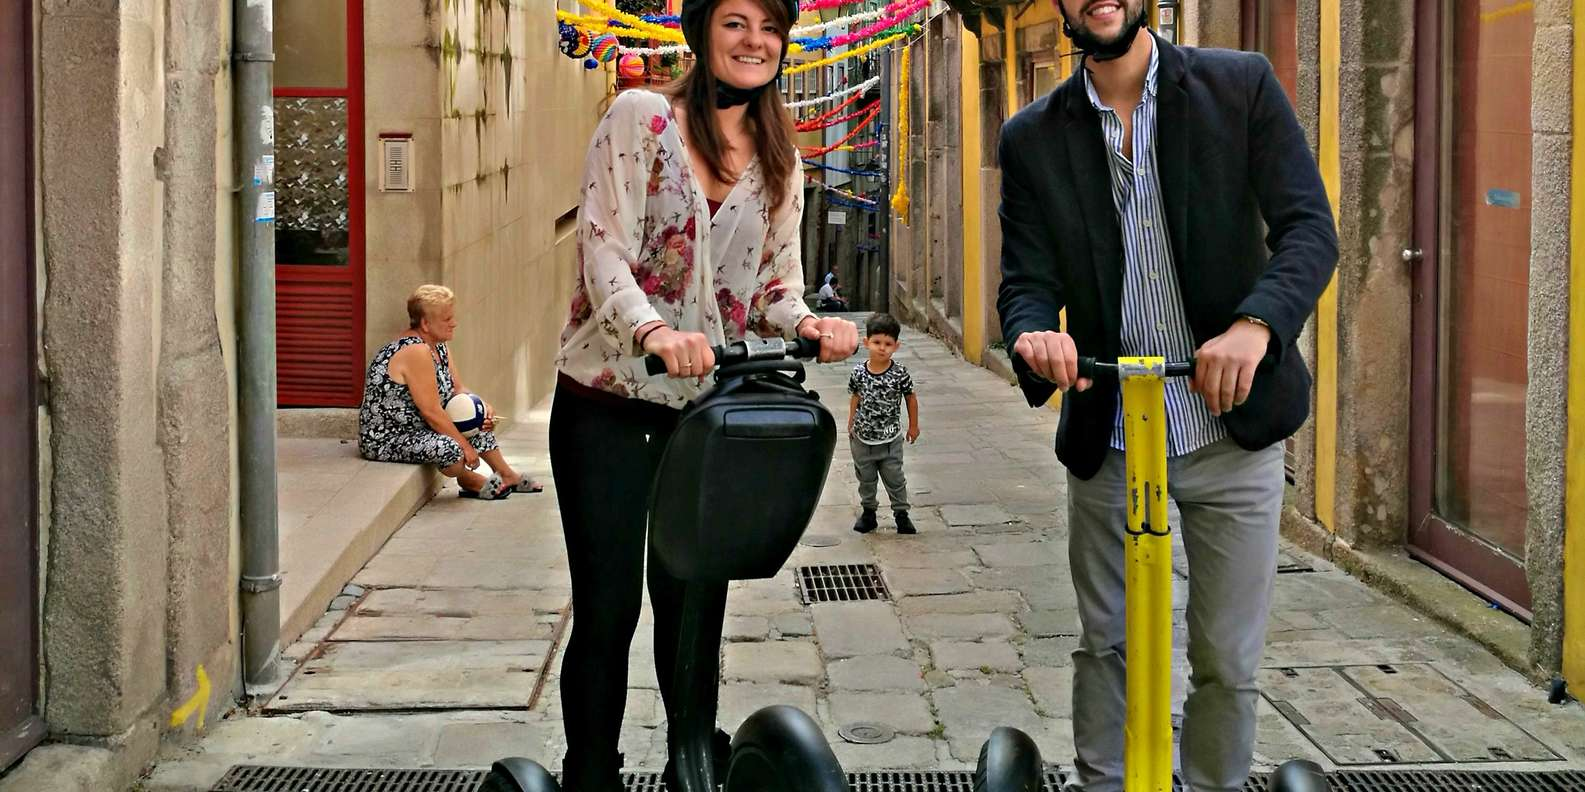 Segway Tour around the City